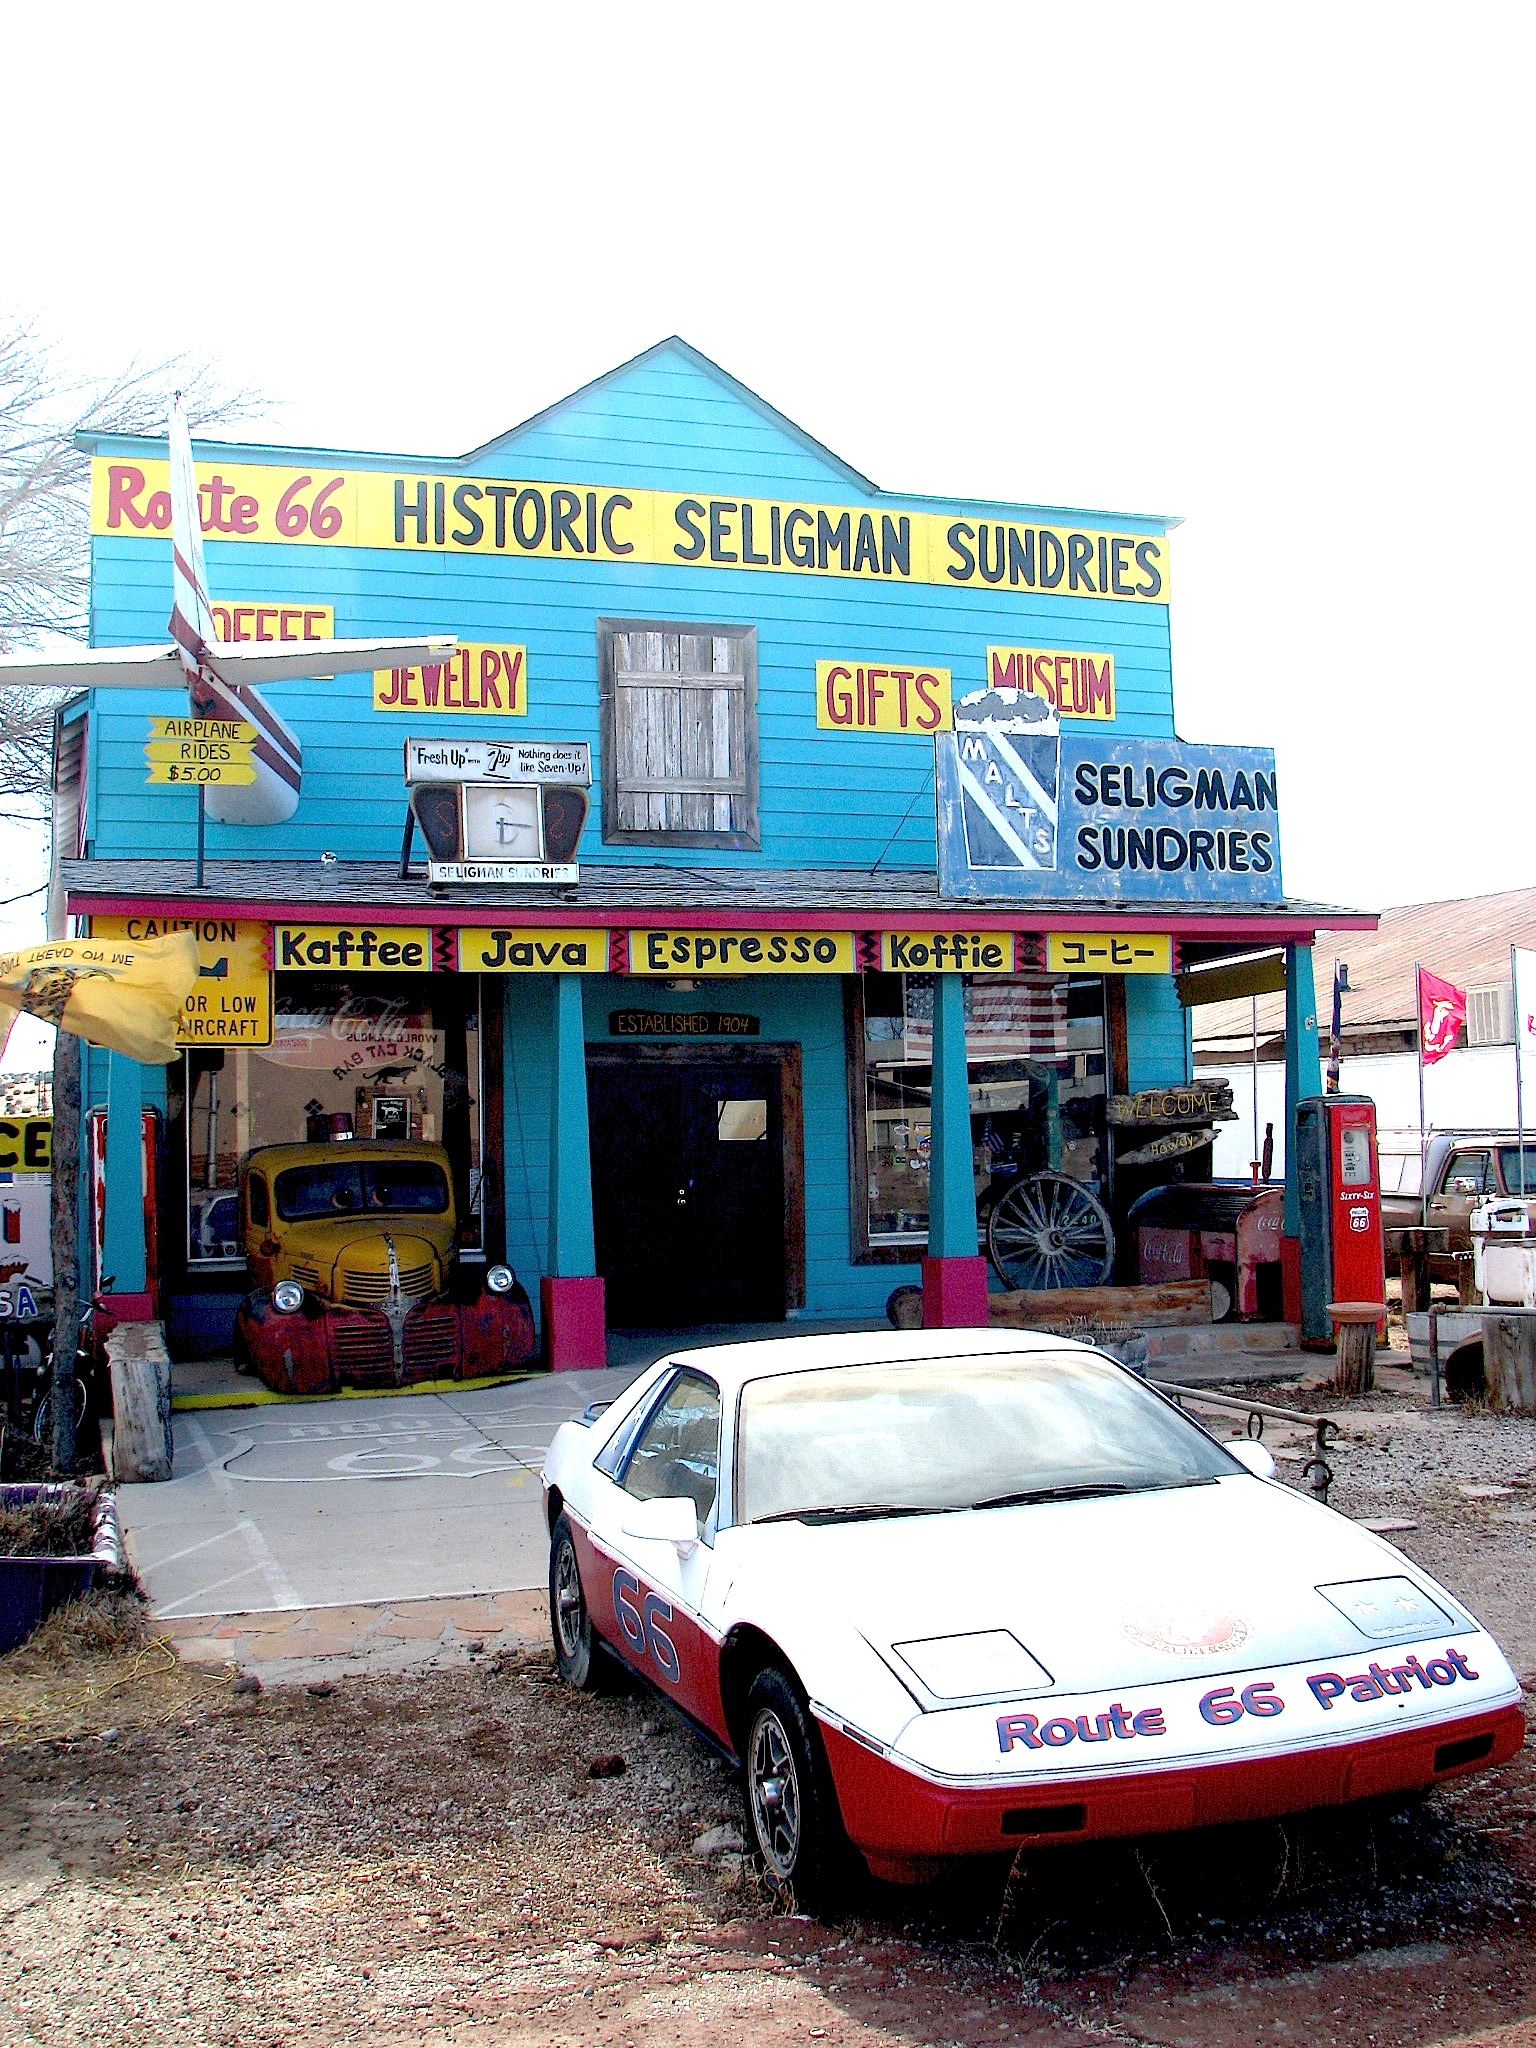 Historic Seligman Sundries embodies Route 66 as  1950s spirit in all its kitschy glory.